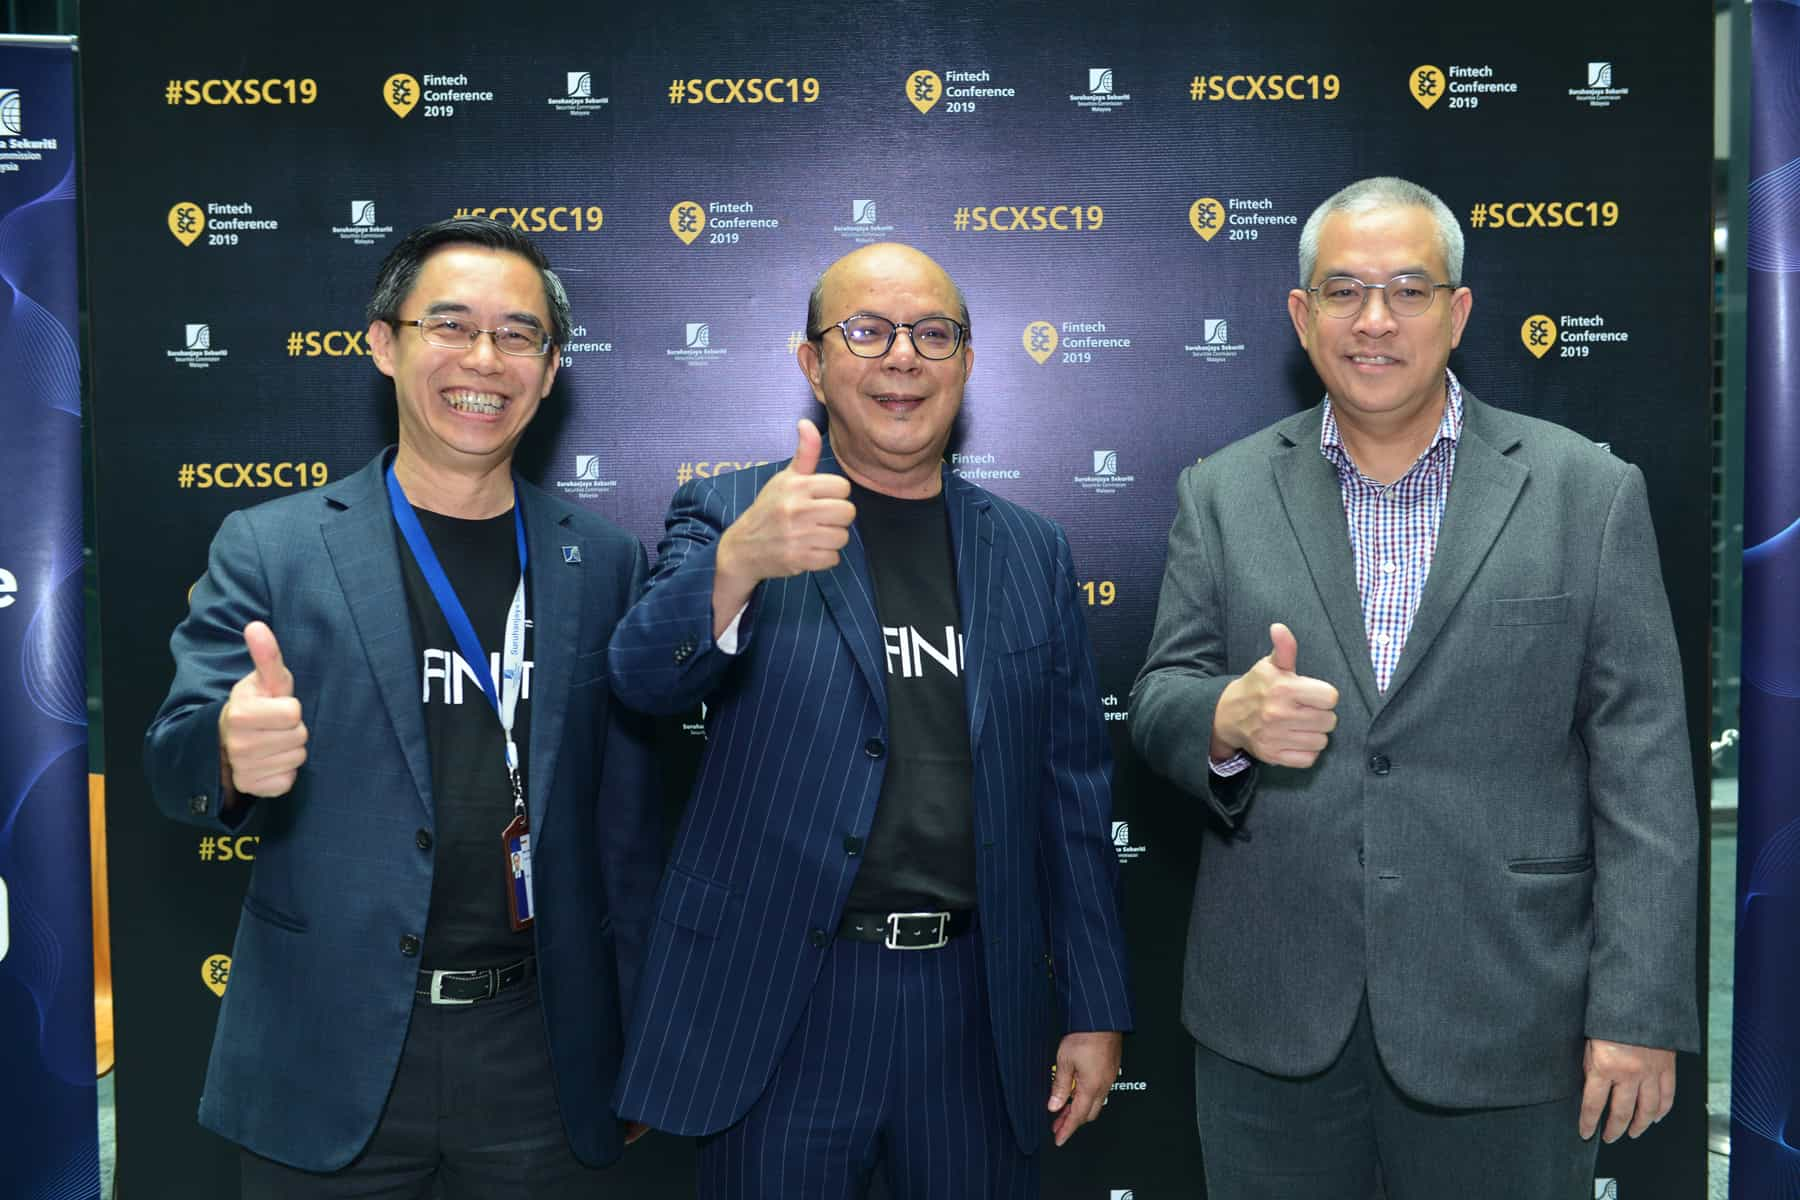 Securities Commission Malaysia Hosted the Sixth Edition of the SCxSC Fintech Conference on Oct 22